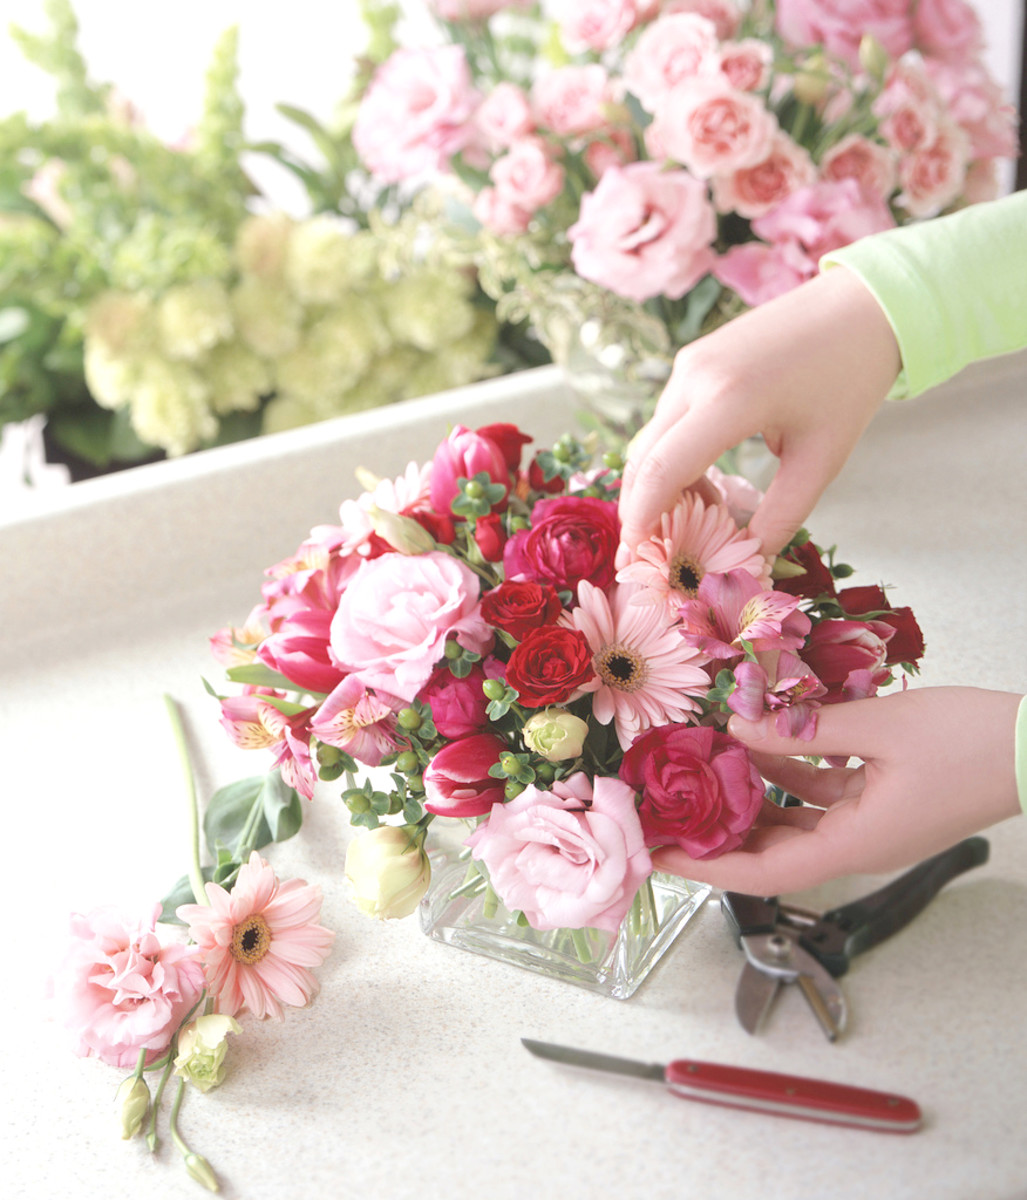 50 Creative Florist and Flower Shop Names ToughNickel